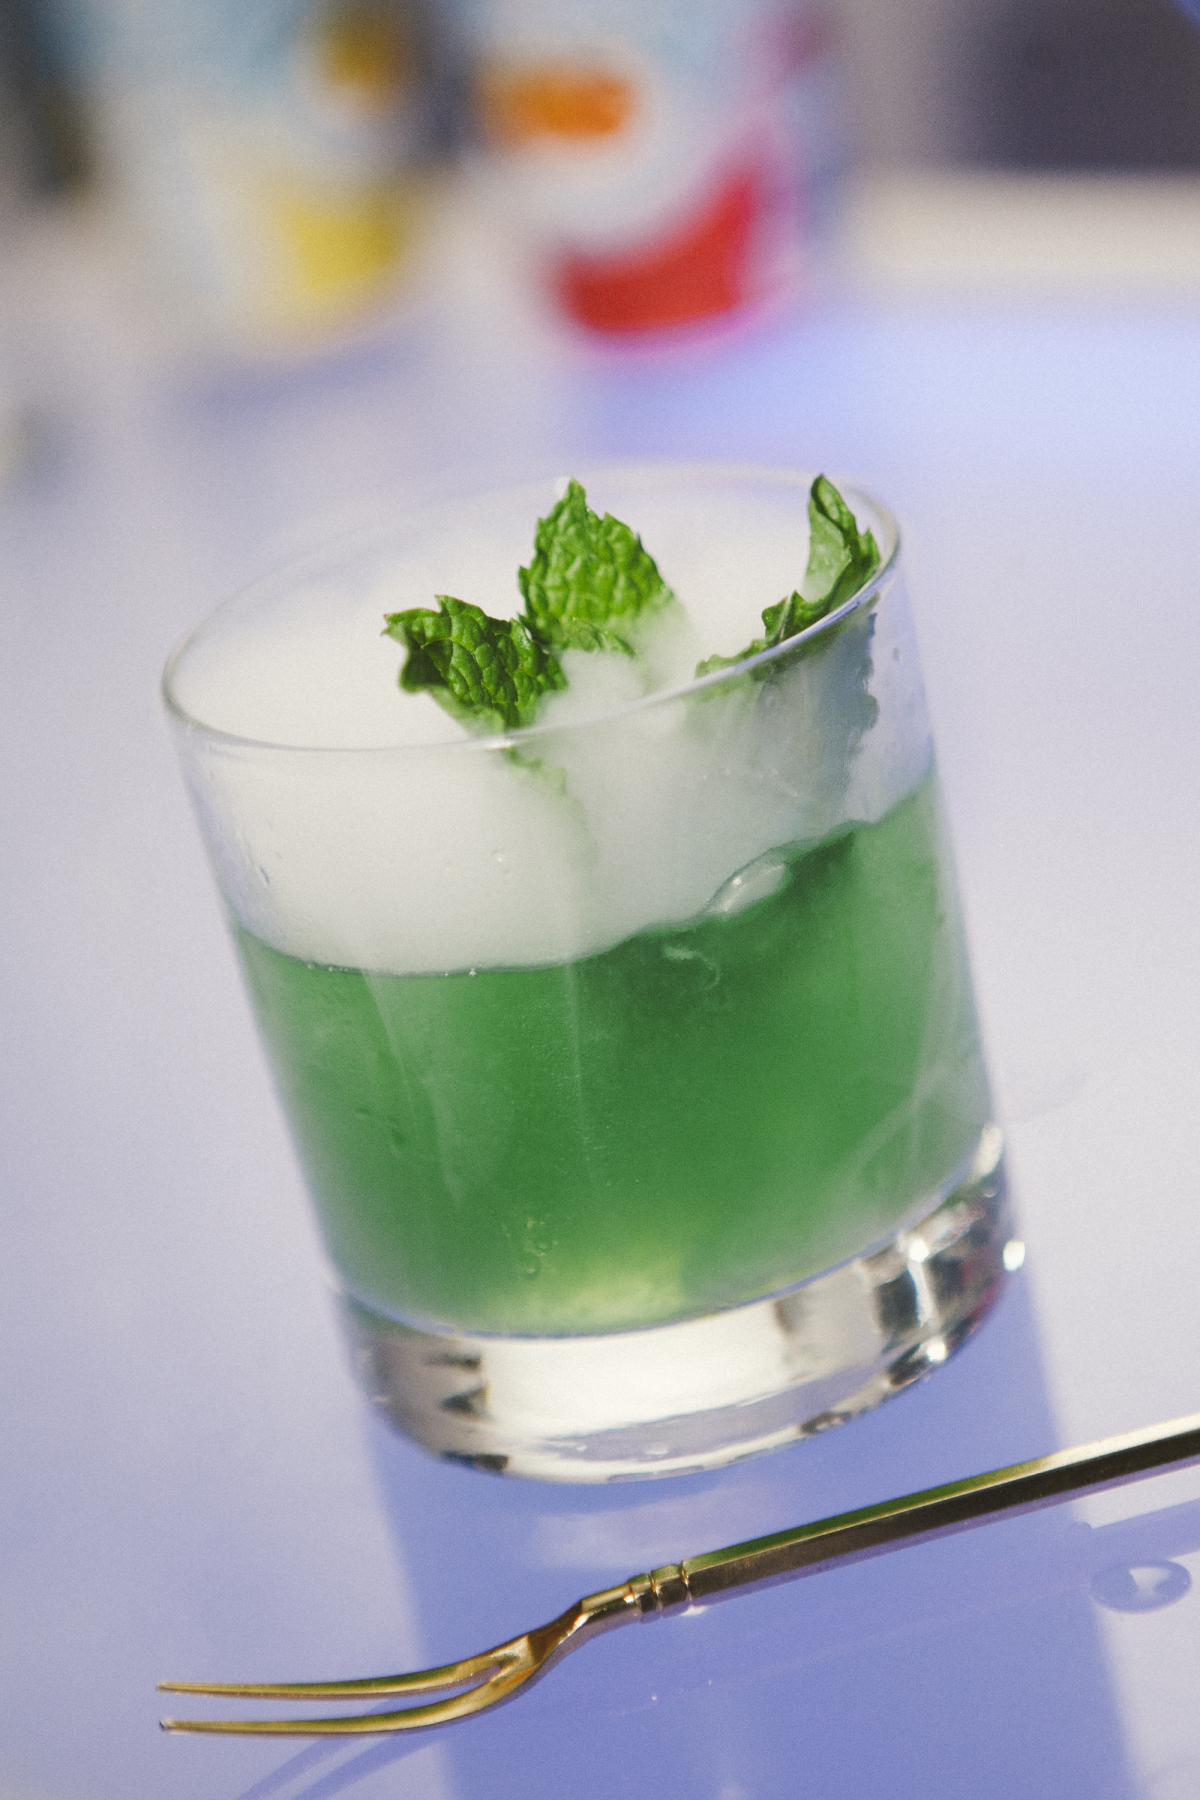 is a mojito a girly drink